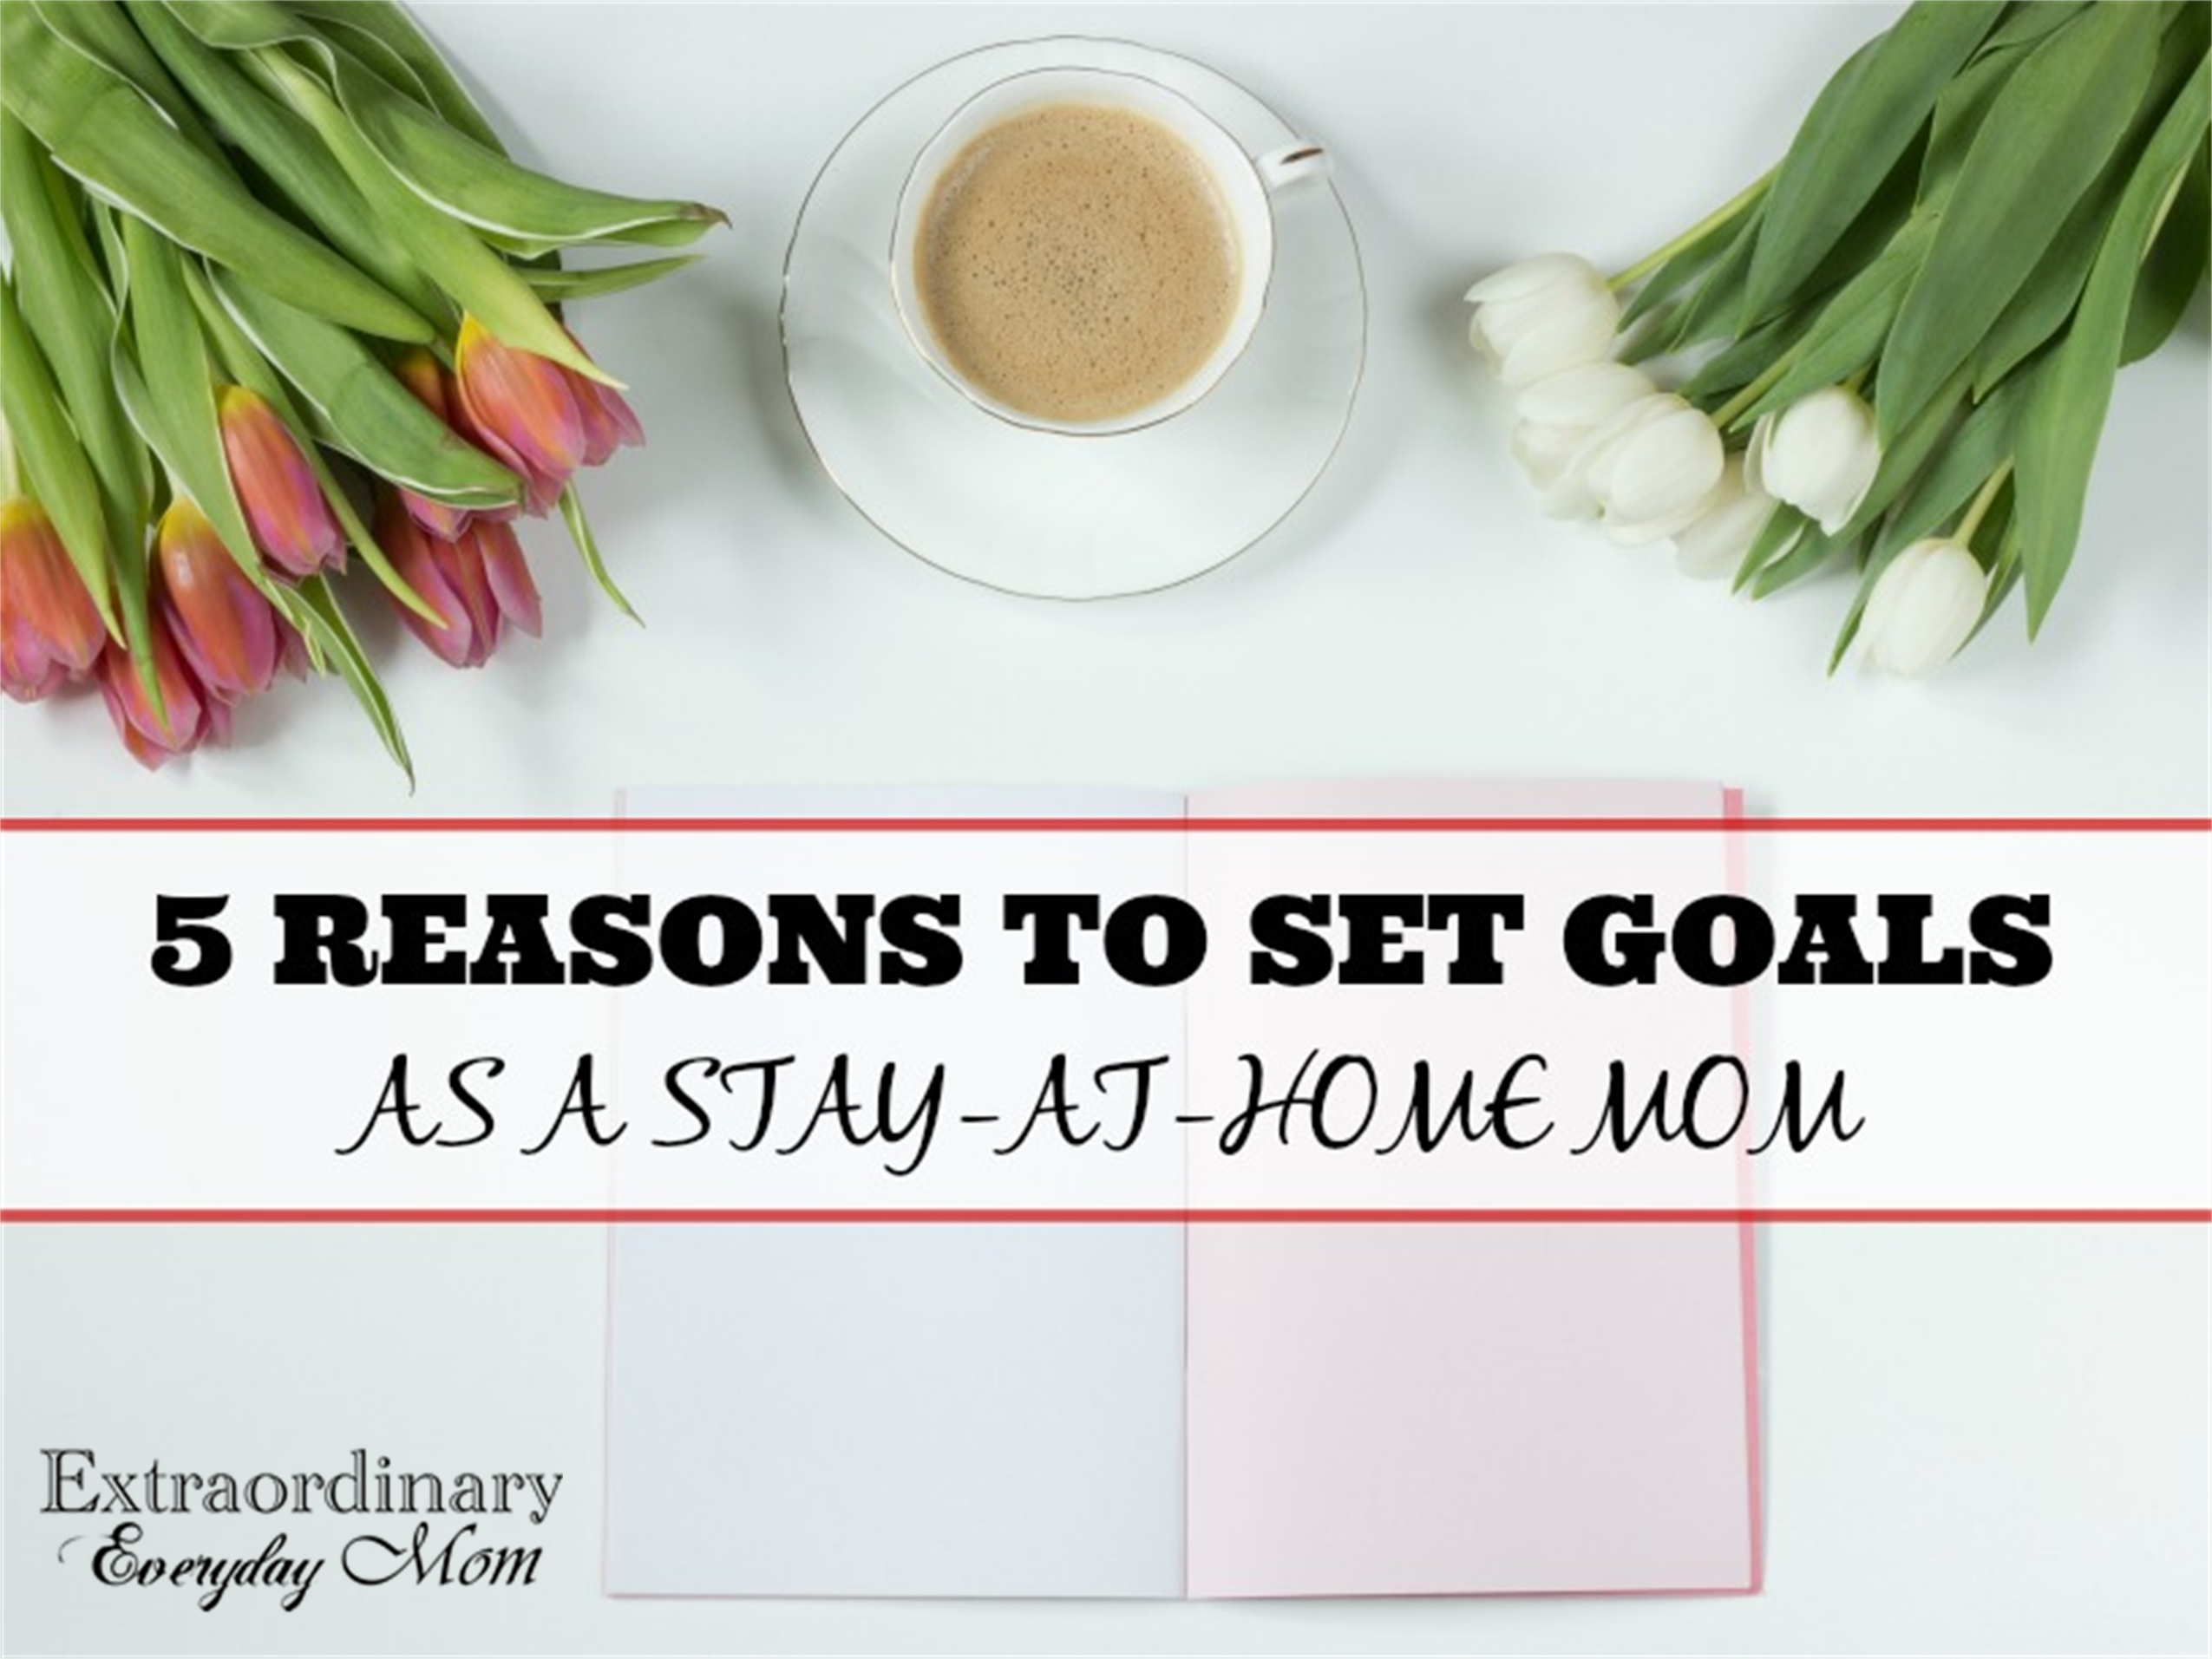 5 Reasons to Set Goals as a Stay-at-Home Mom